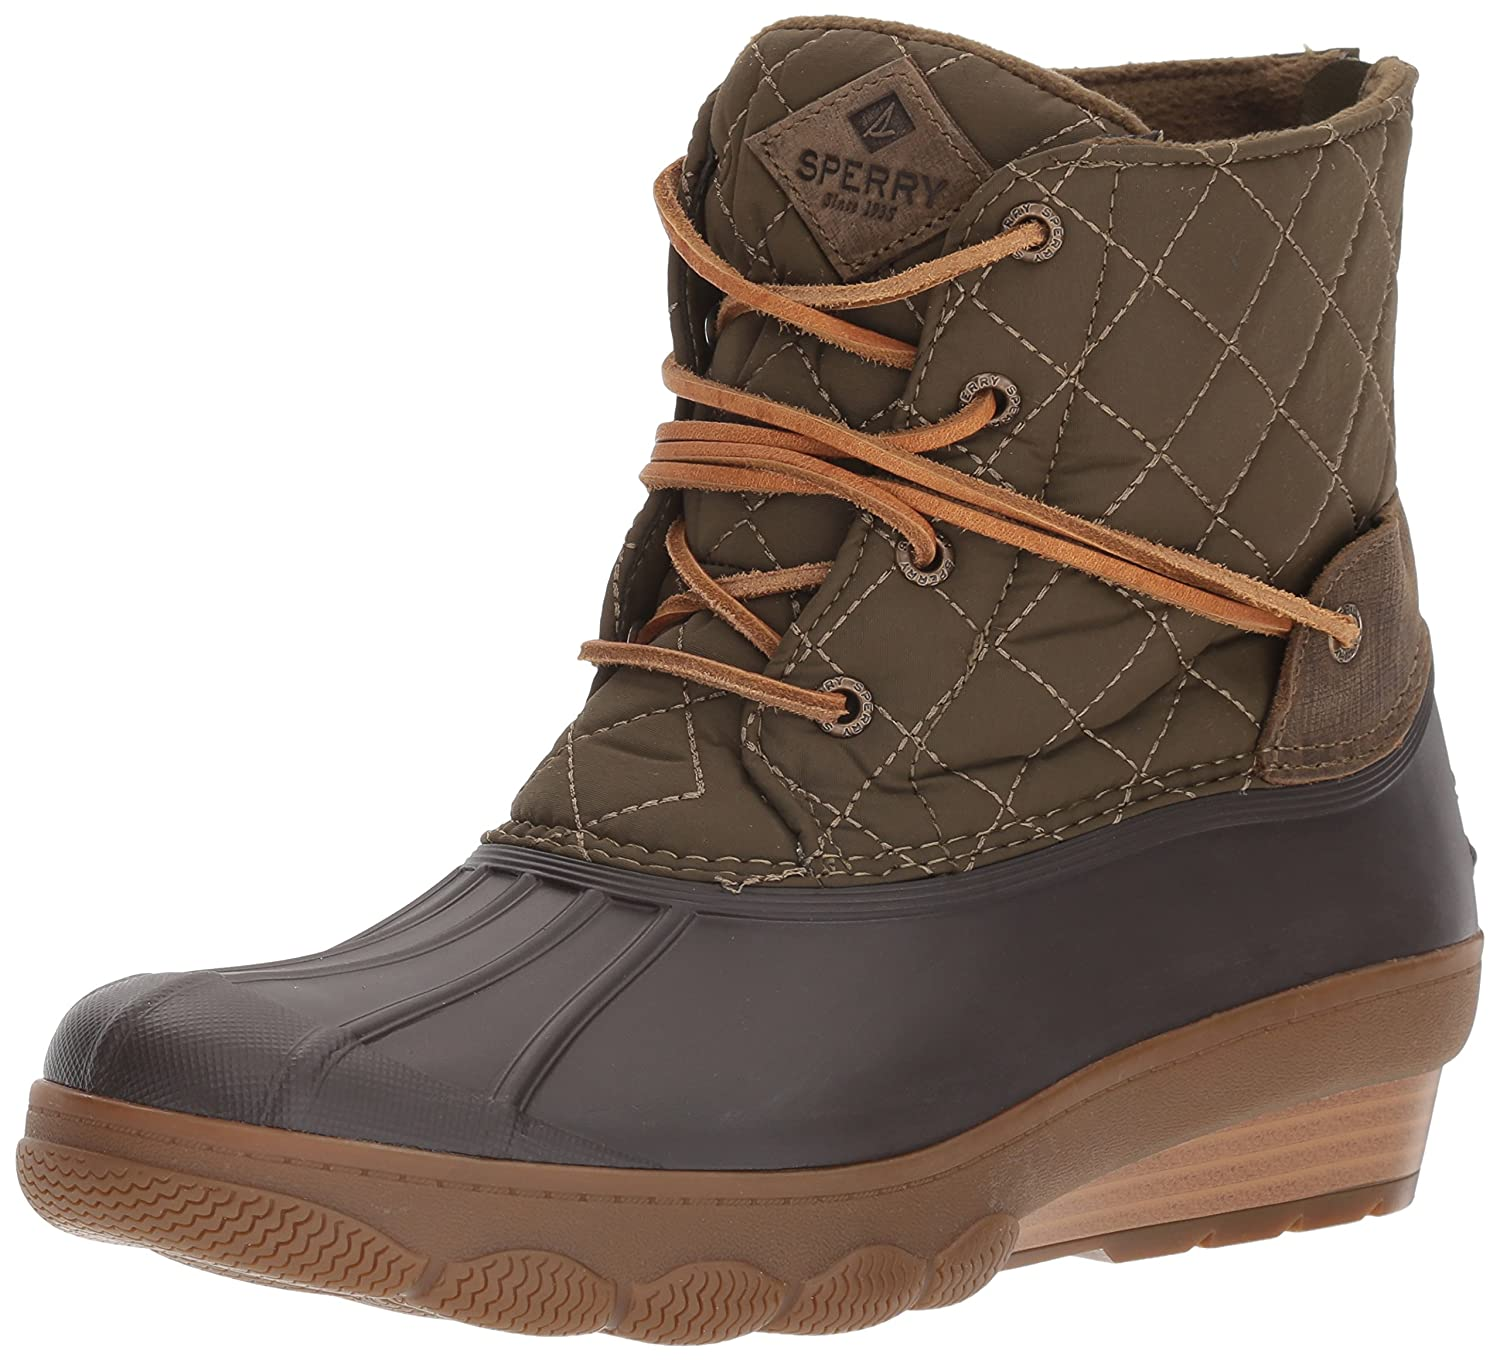 Sperry Top-Sider Women's Saltwater Wedge Tide Quilted Rain Boot B01N4G33W4 6 B(M) US Brown